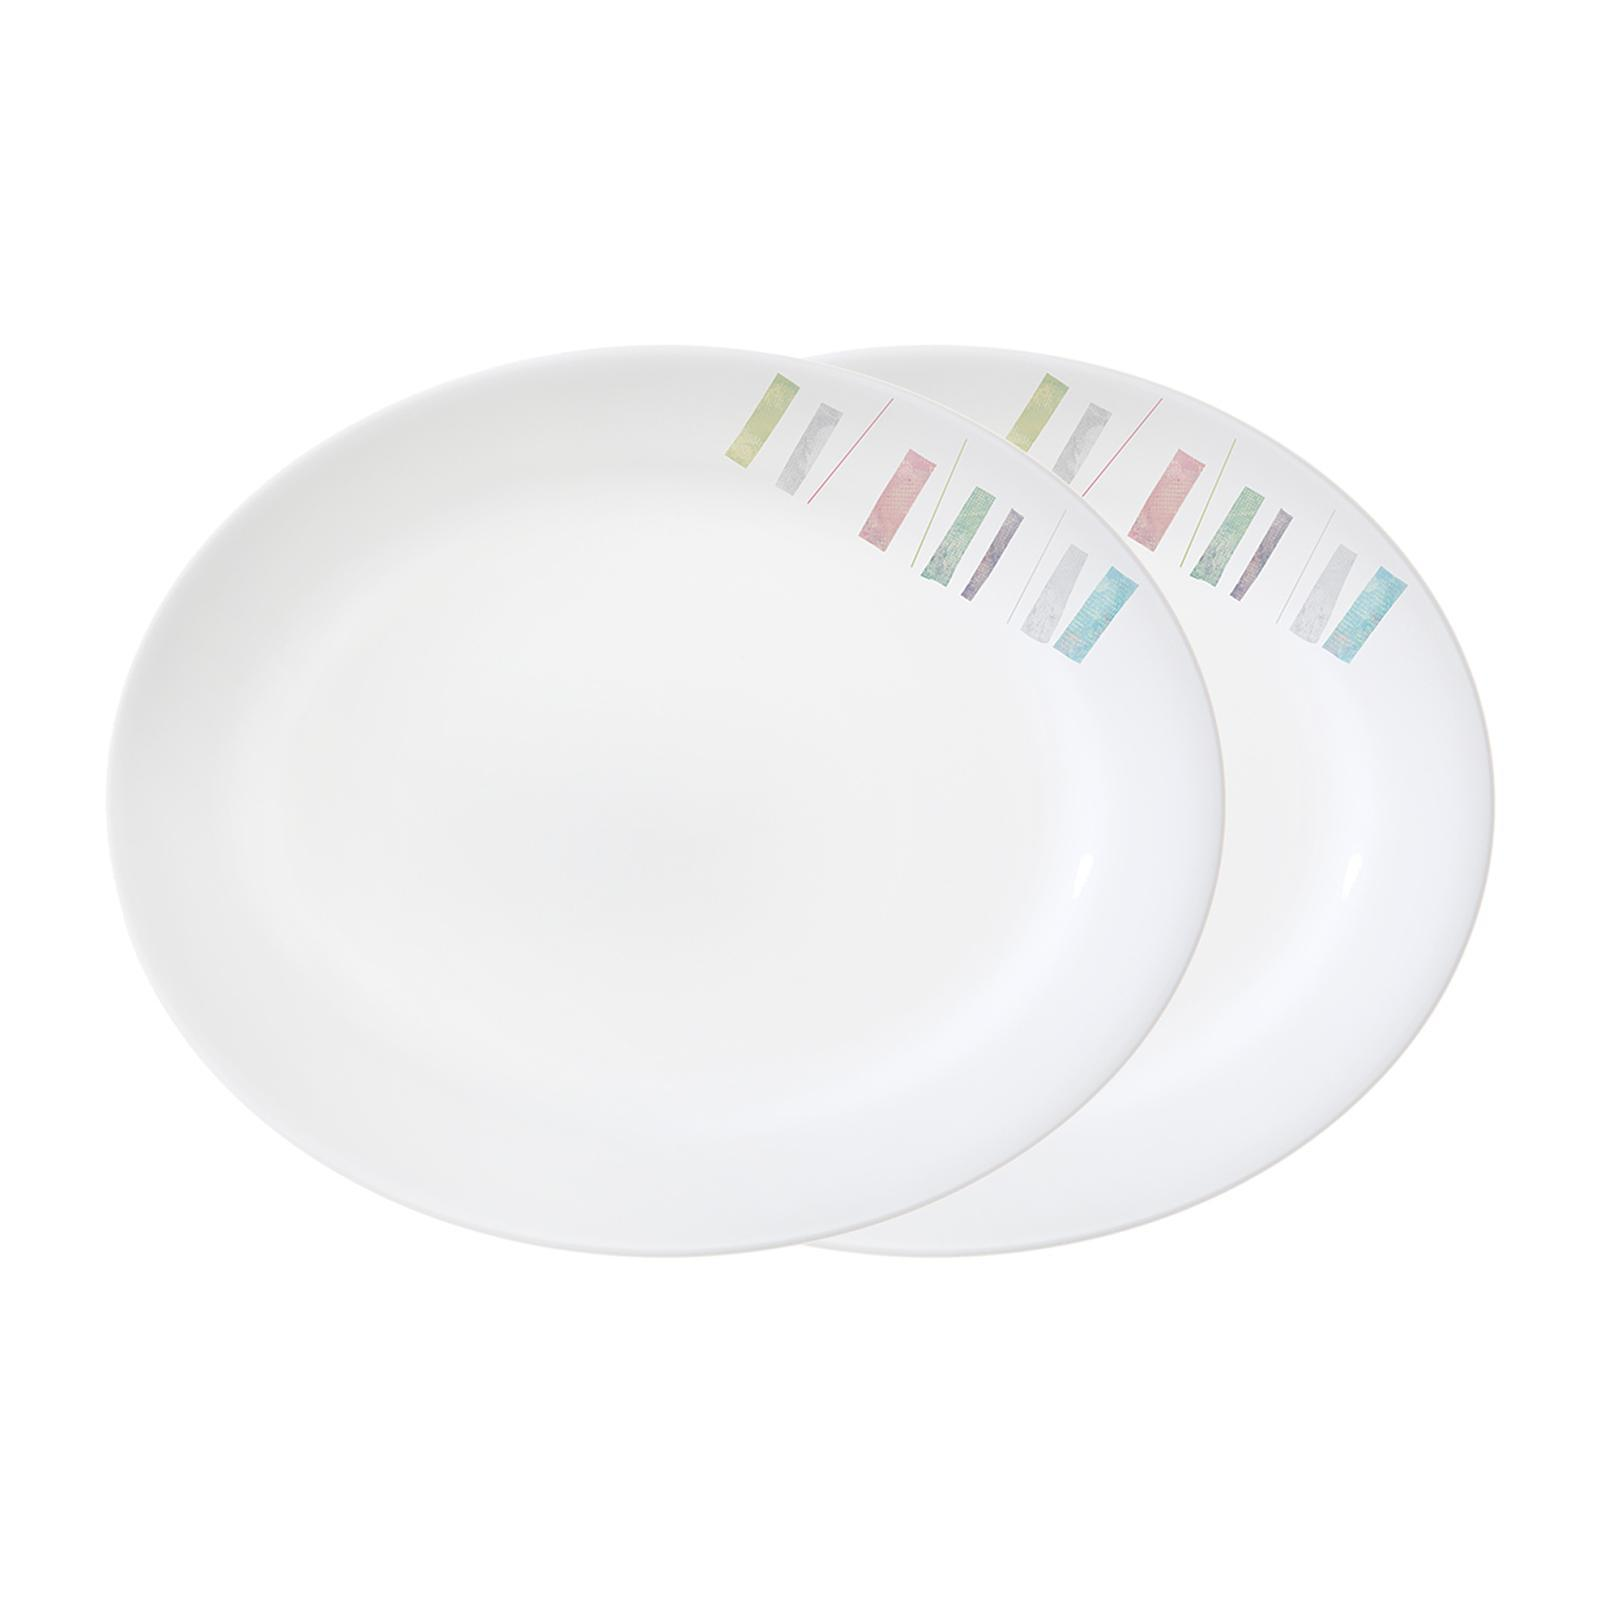 Corelle 2Pc Serving Platter Set (Design: Handicraft)